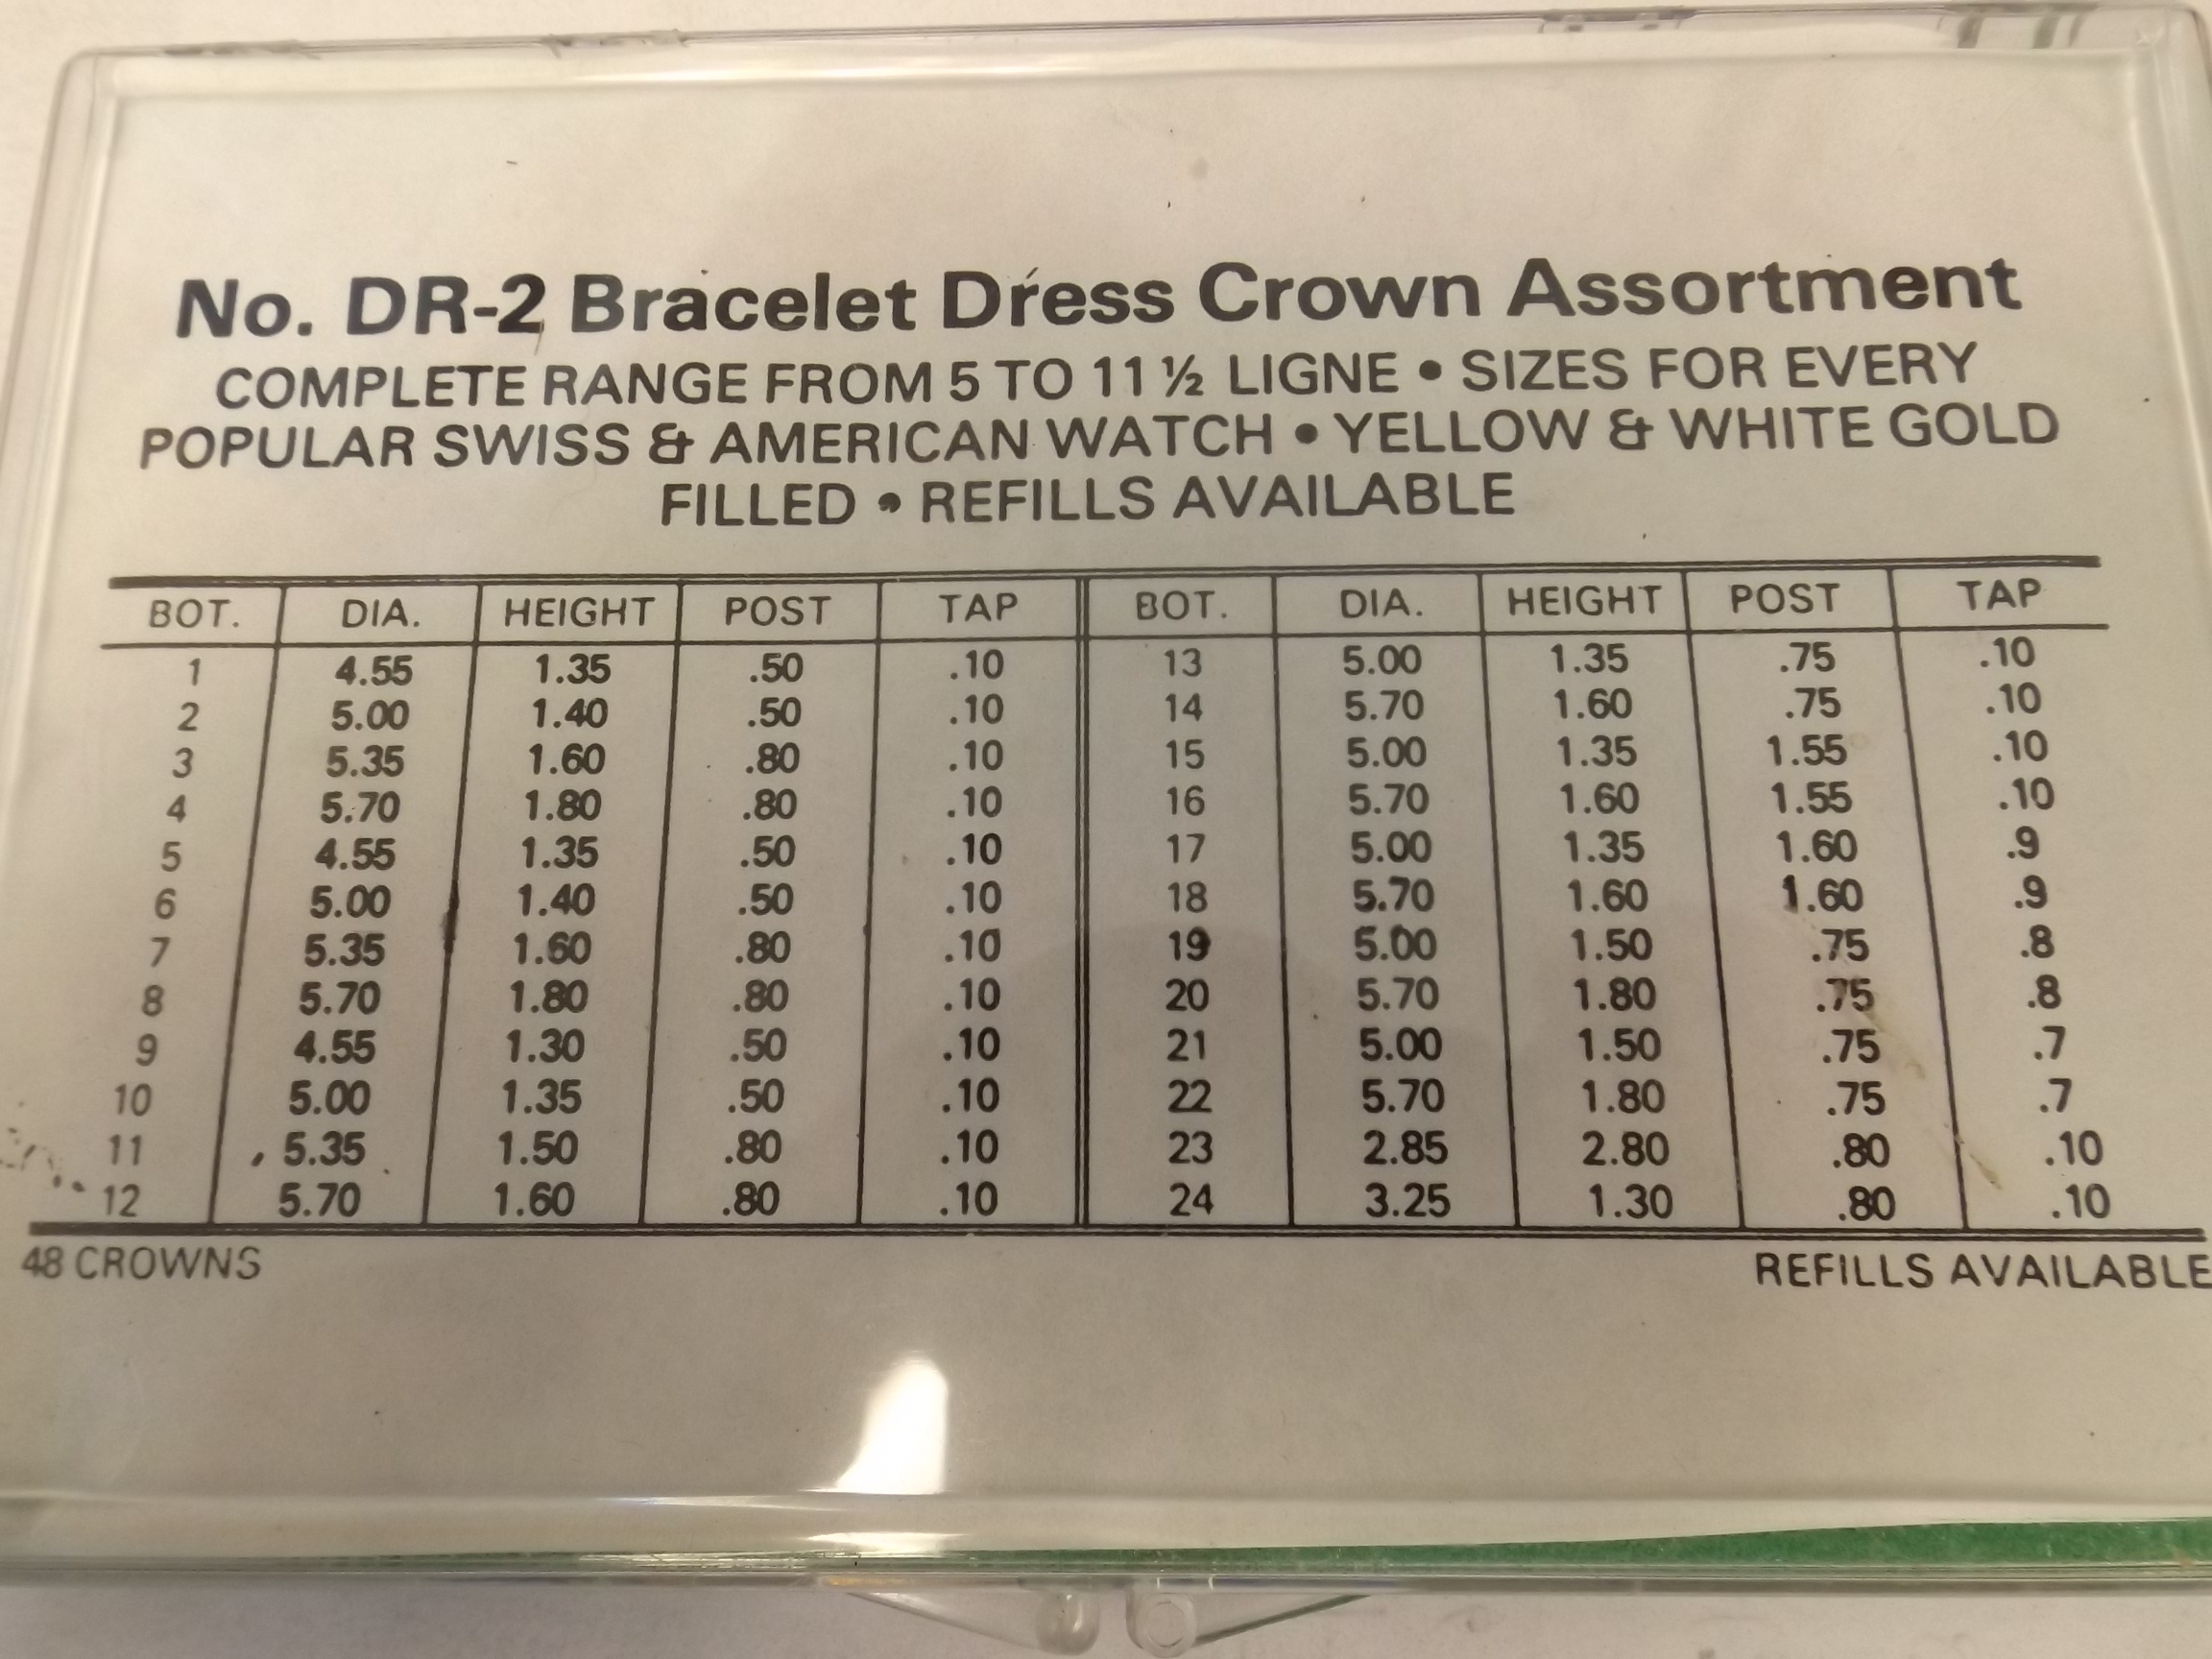 DR-2 Bracelet Dress Crown Assortment- 48 Piece- Yellow & White gold filled, for Swiss & American- Acon